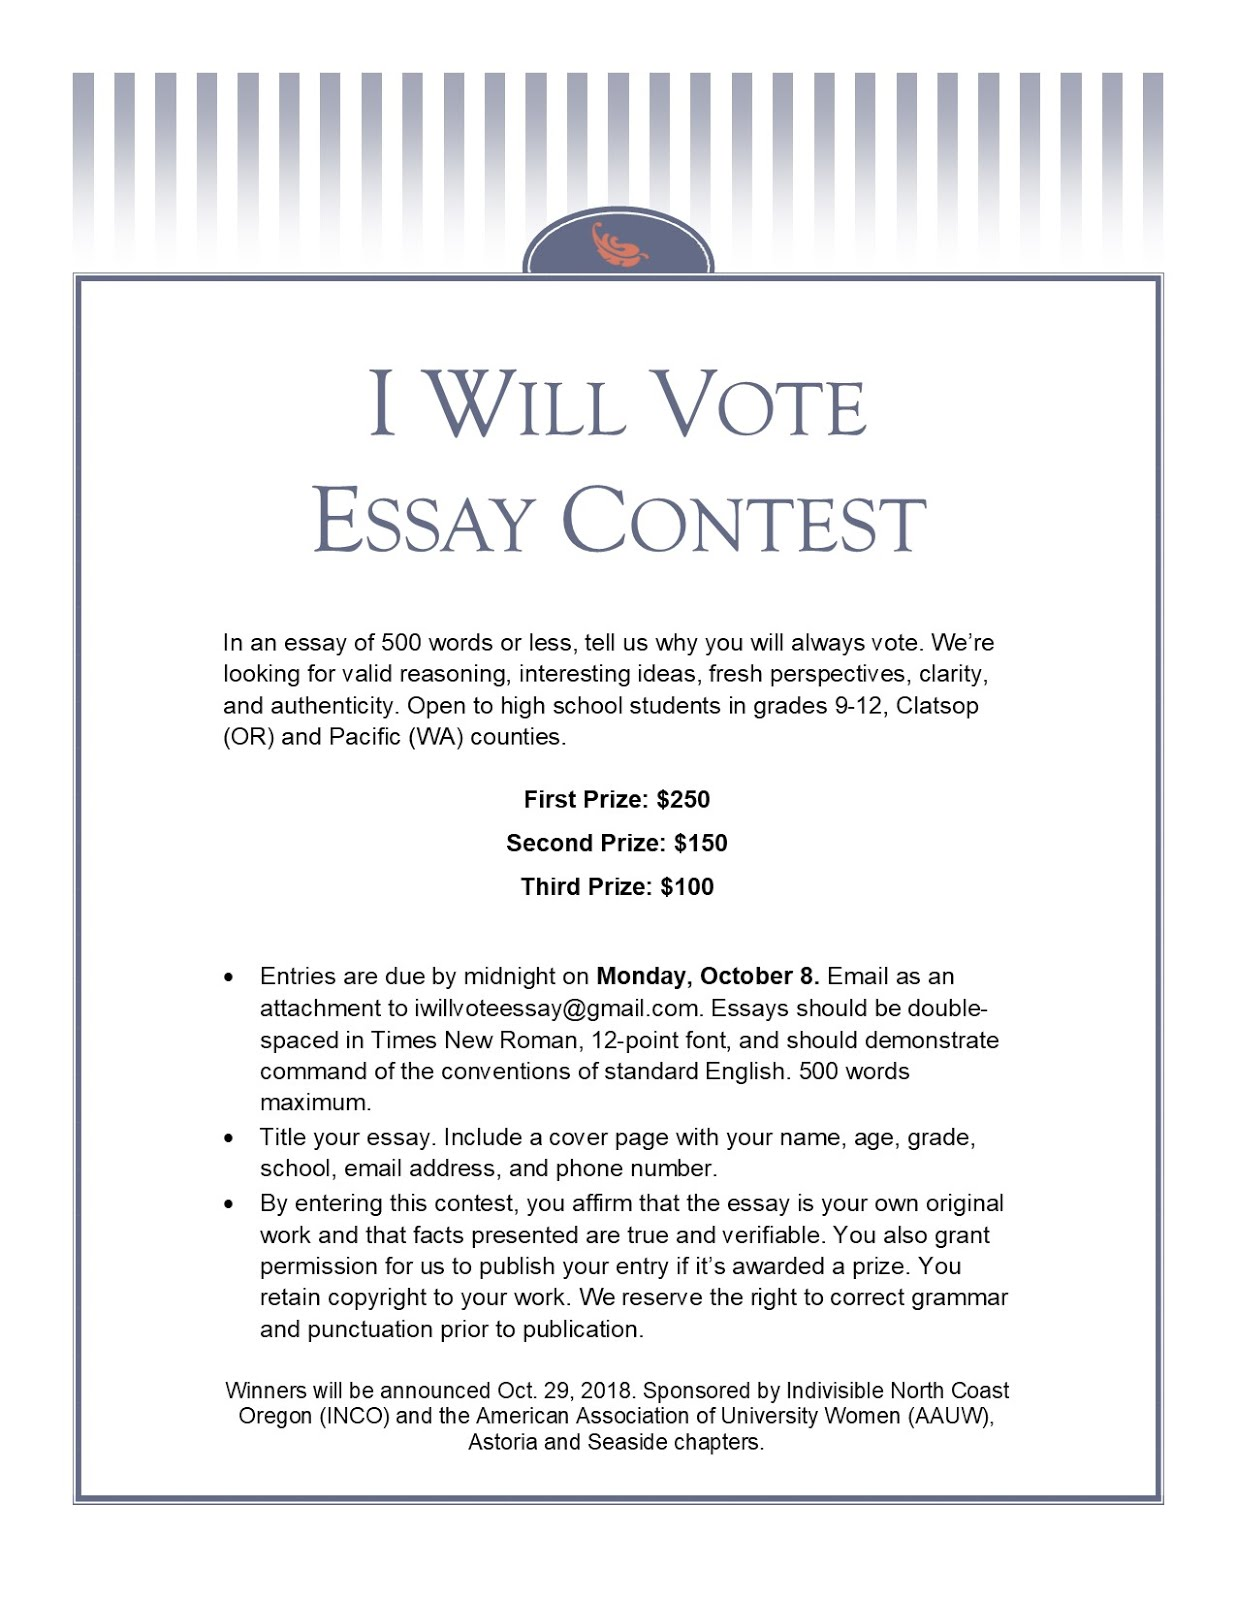 I WILL VOTE ESSAY CONTEST